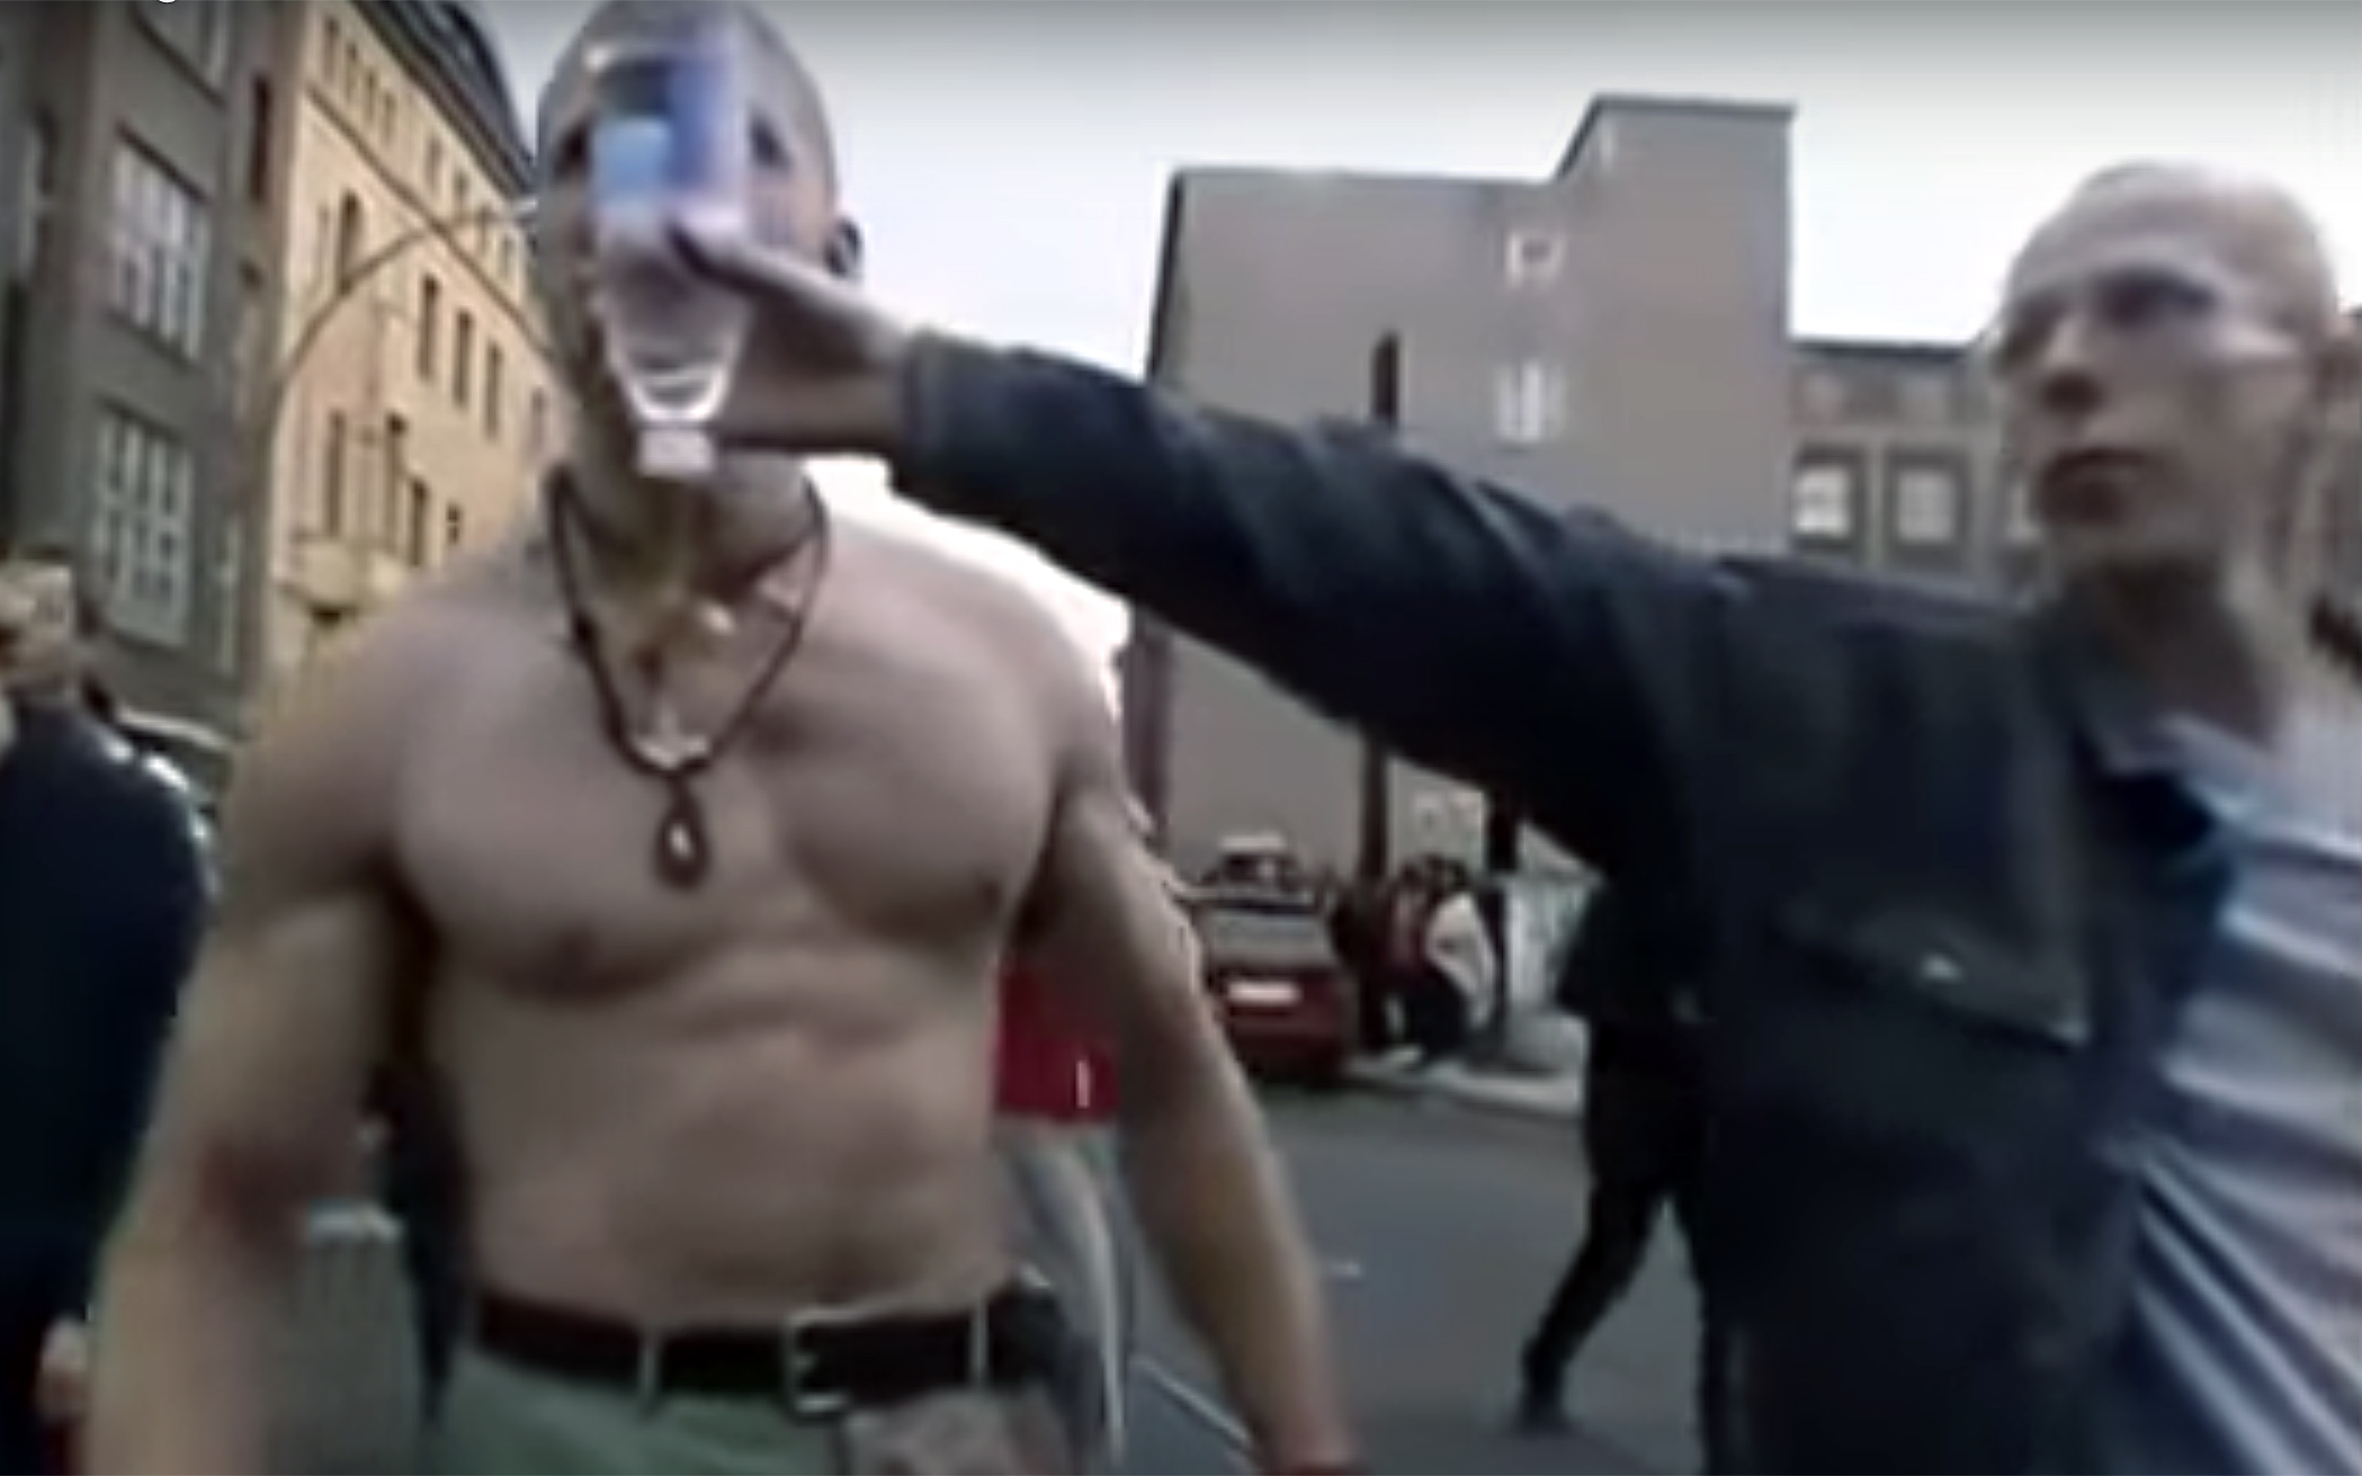 873.Techno Viking / Viral - Techno Viking is an internet phenomenon or meme based on a video from the 2000 Fuckparade in Berlin, Germany. The 4-minute video shot by experimental video artist Matthias Fritsch. The camera shows dancing people with a blue haired woman in front. A man stumbles into the scene grabbing the woman. A bare-chested man (known colloquially as the Techno Viking) enters the scene while turning to that man. He grabs him by the arms and the camera shows the confrontation. The bare-chested man pushes the guy back in the direction he came. He looks at him sternly and then points his finger at him, ensuring he behaves. Then the camera follows the bare-chested man as the techno parade continues. As the situation calms down, the bare-chested man starts to dance down Rosenthaler Straße to techno music.